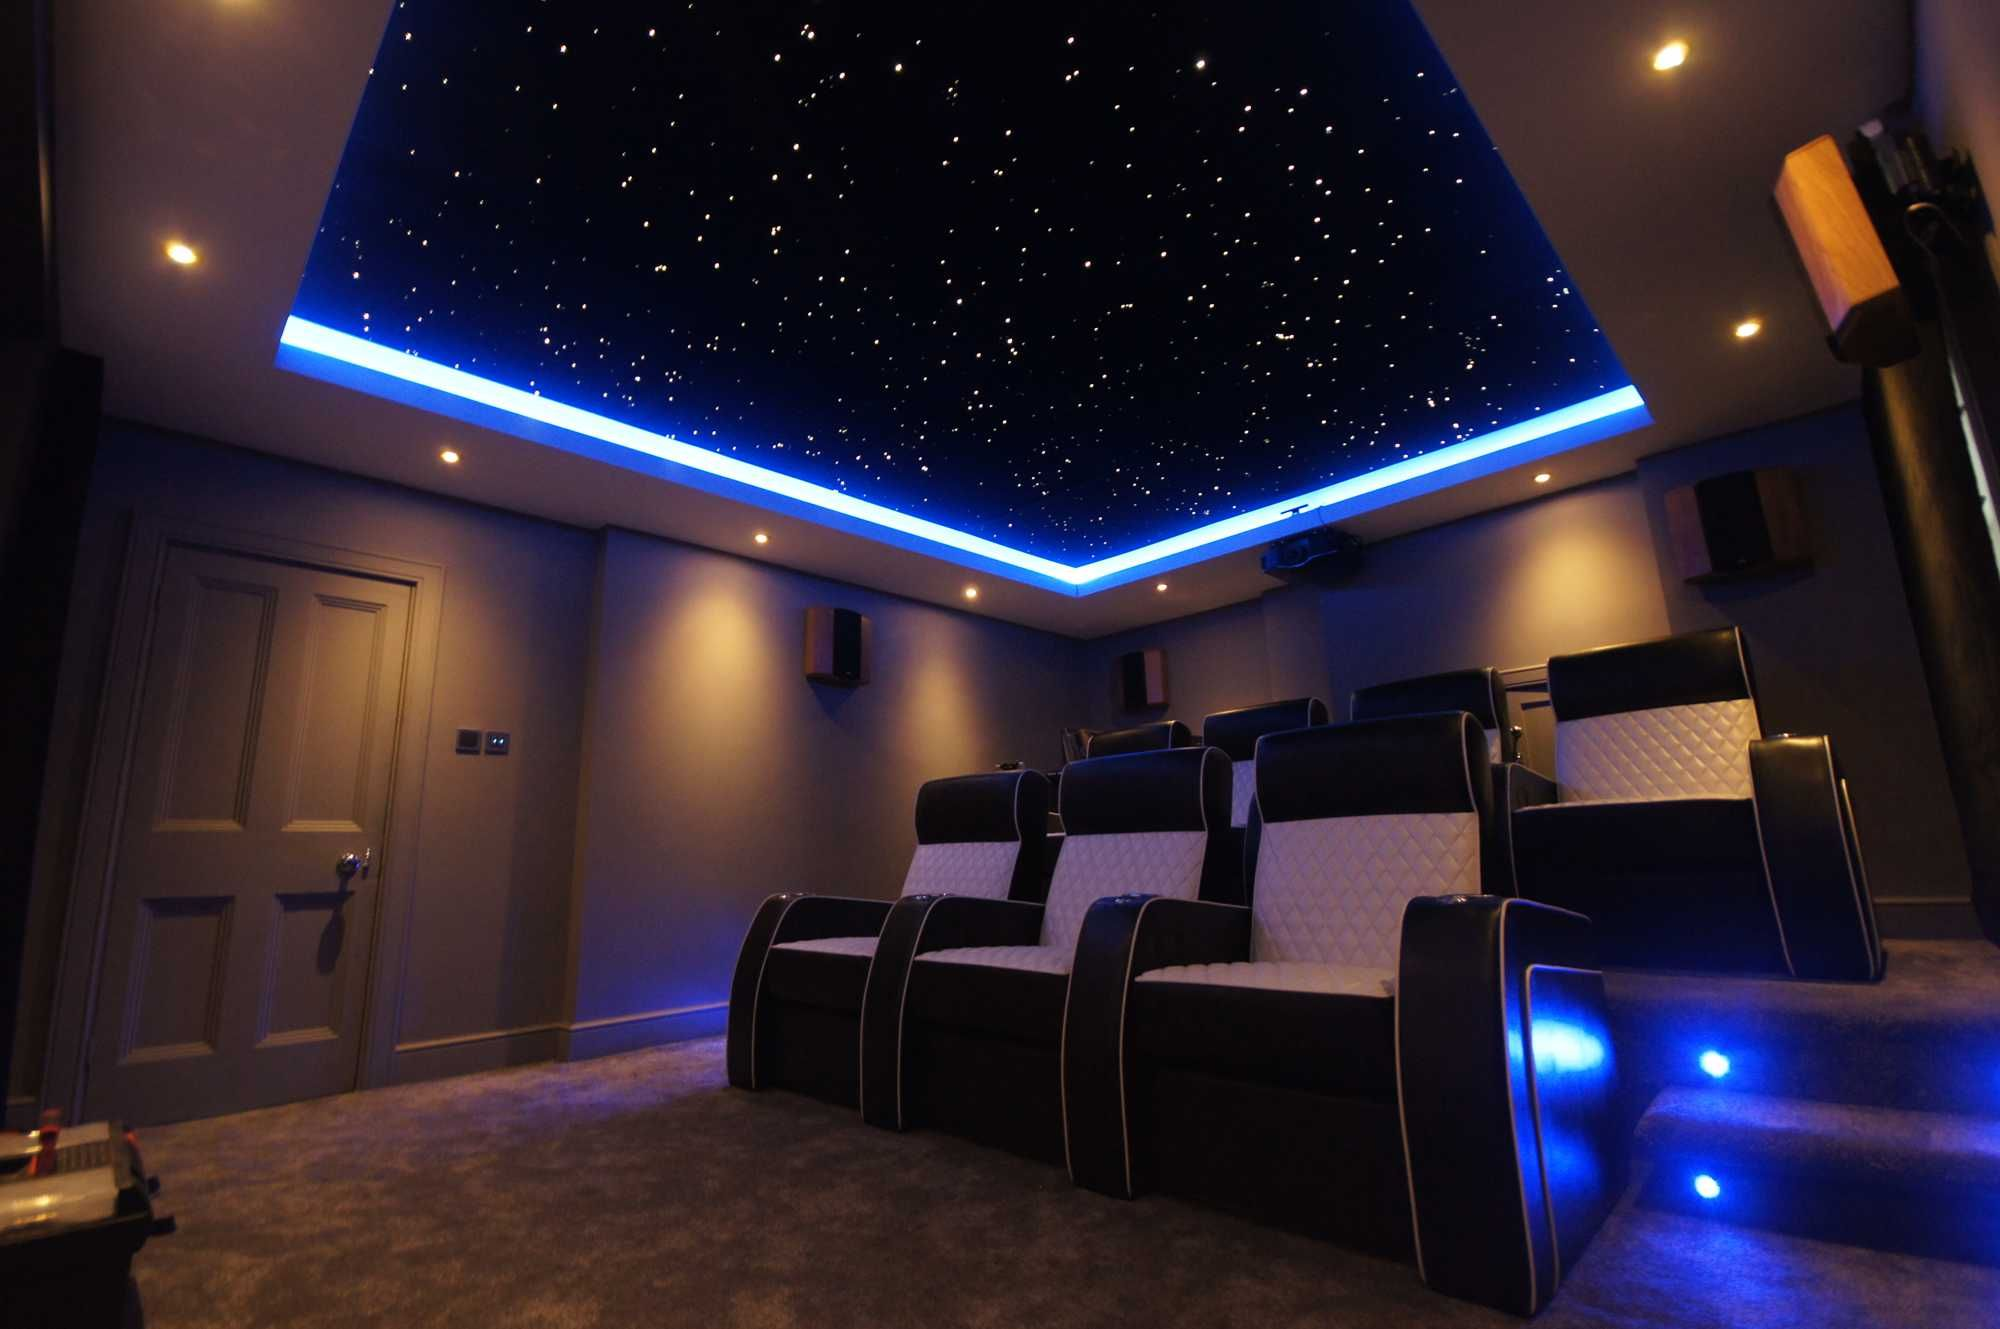 These Infinity Fibre Optic Star Ceiling Add The Final Touch